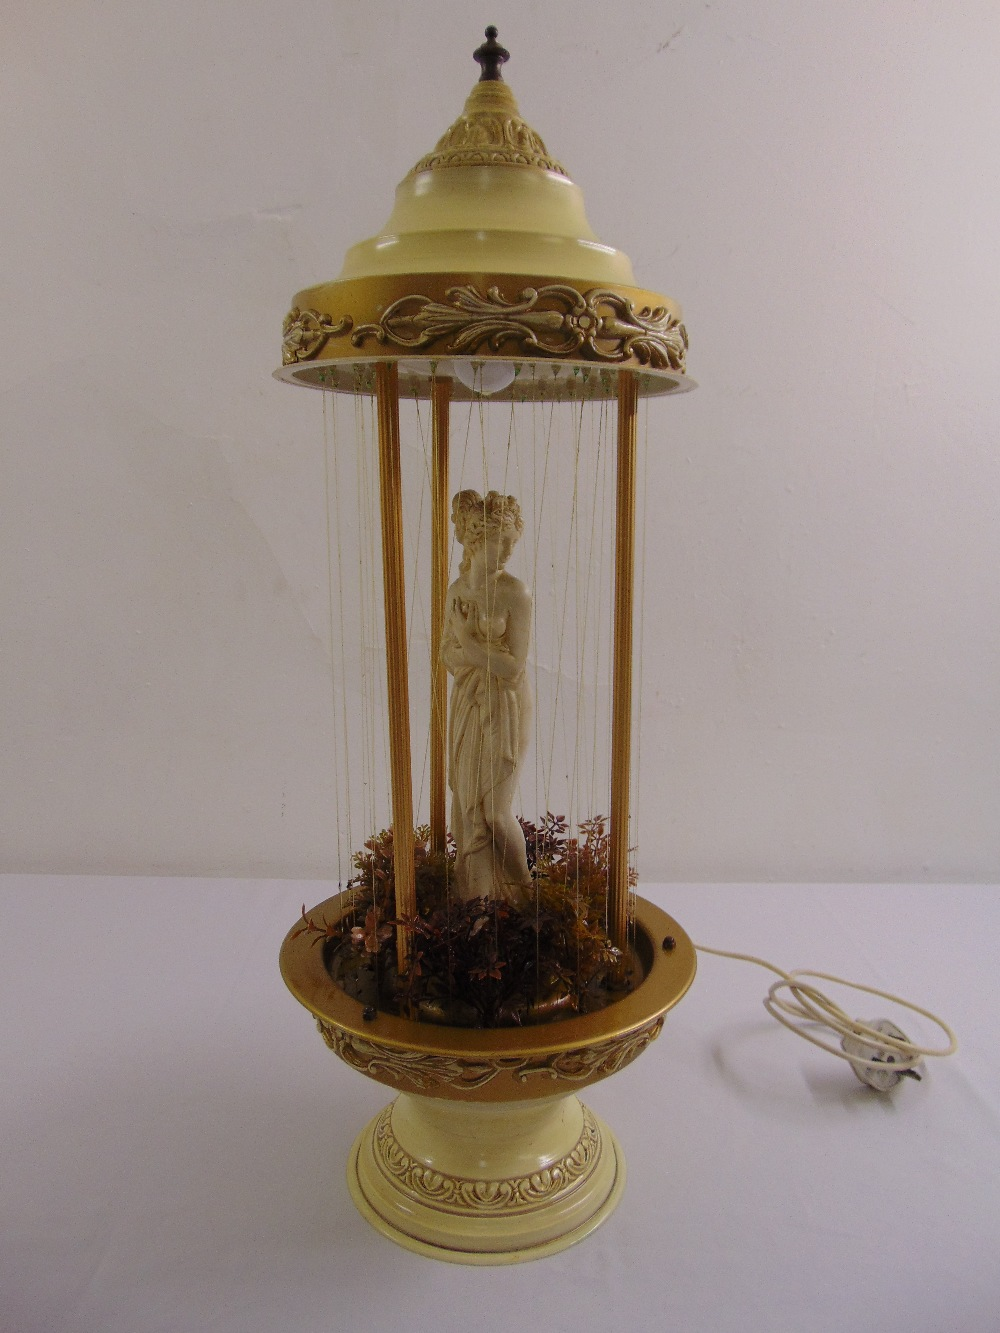 Lot 24 - A decorative oil lamp in the form of a classical maiden framed by a domed cover and circular base